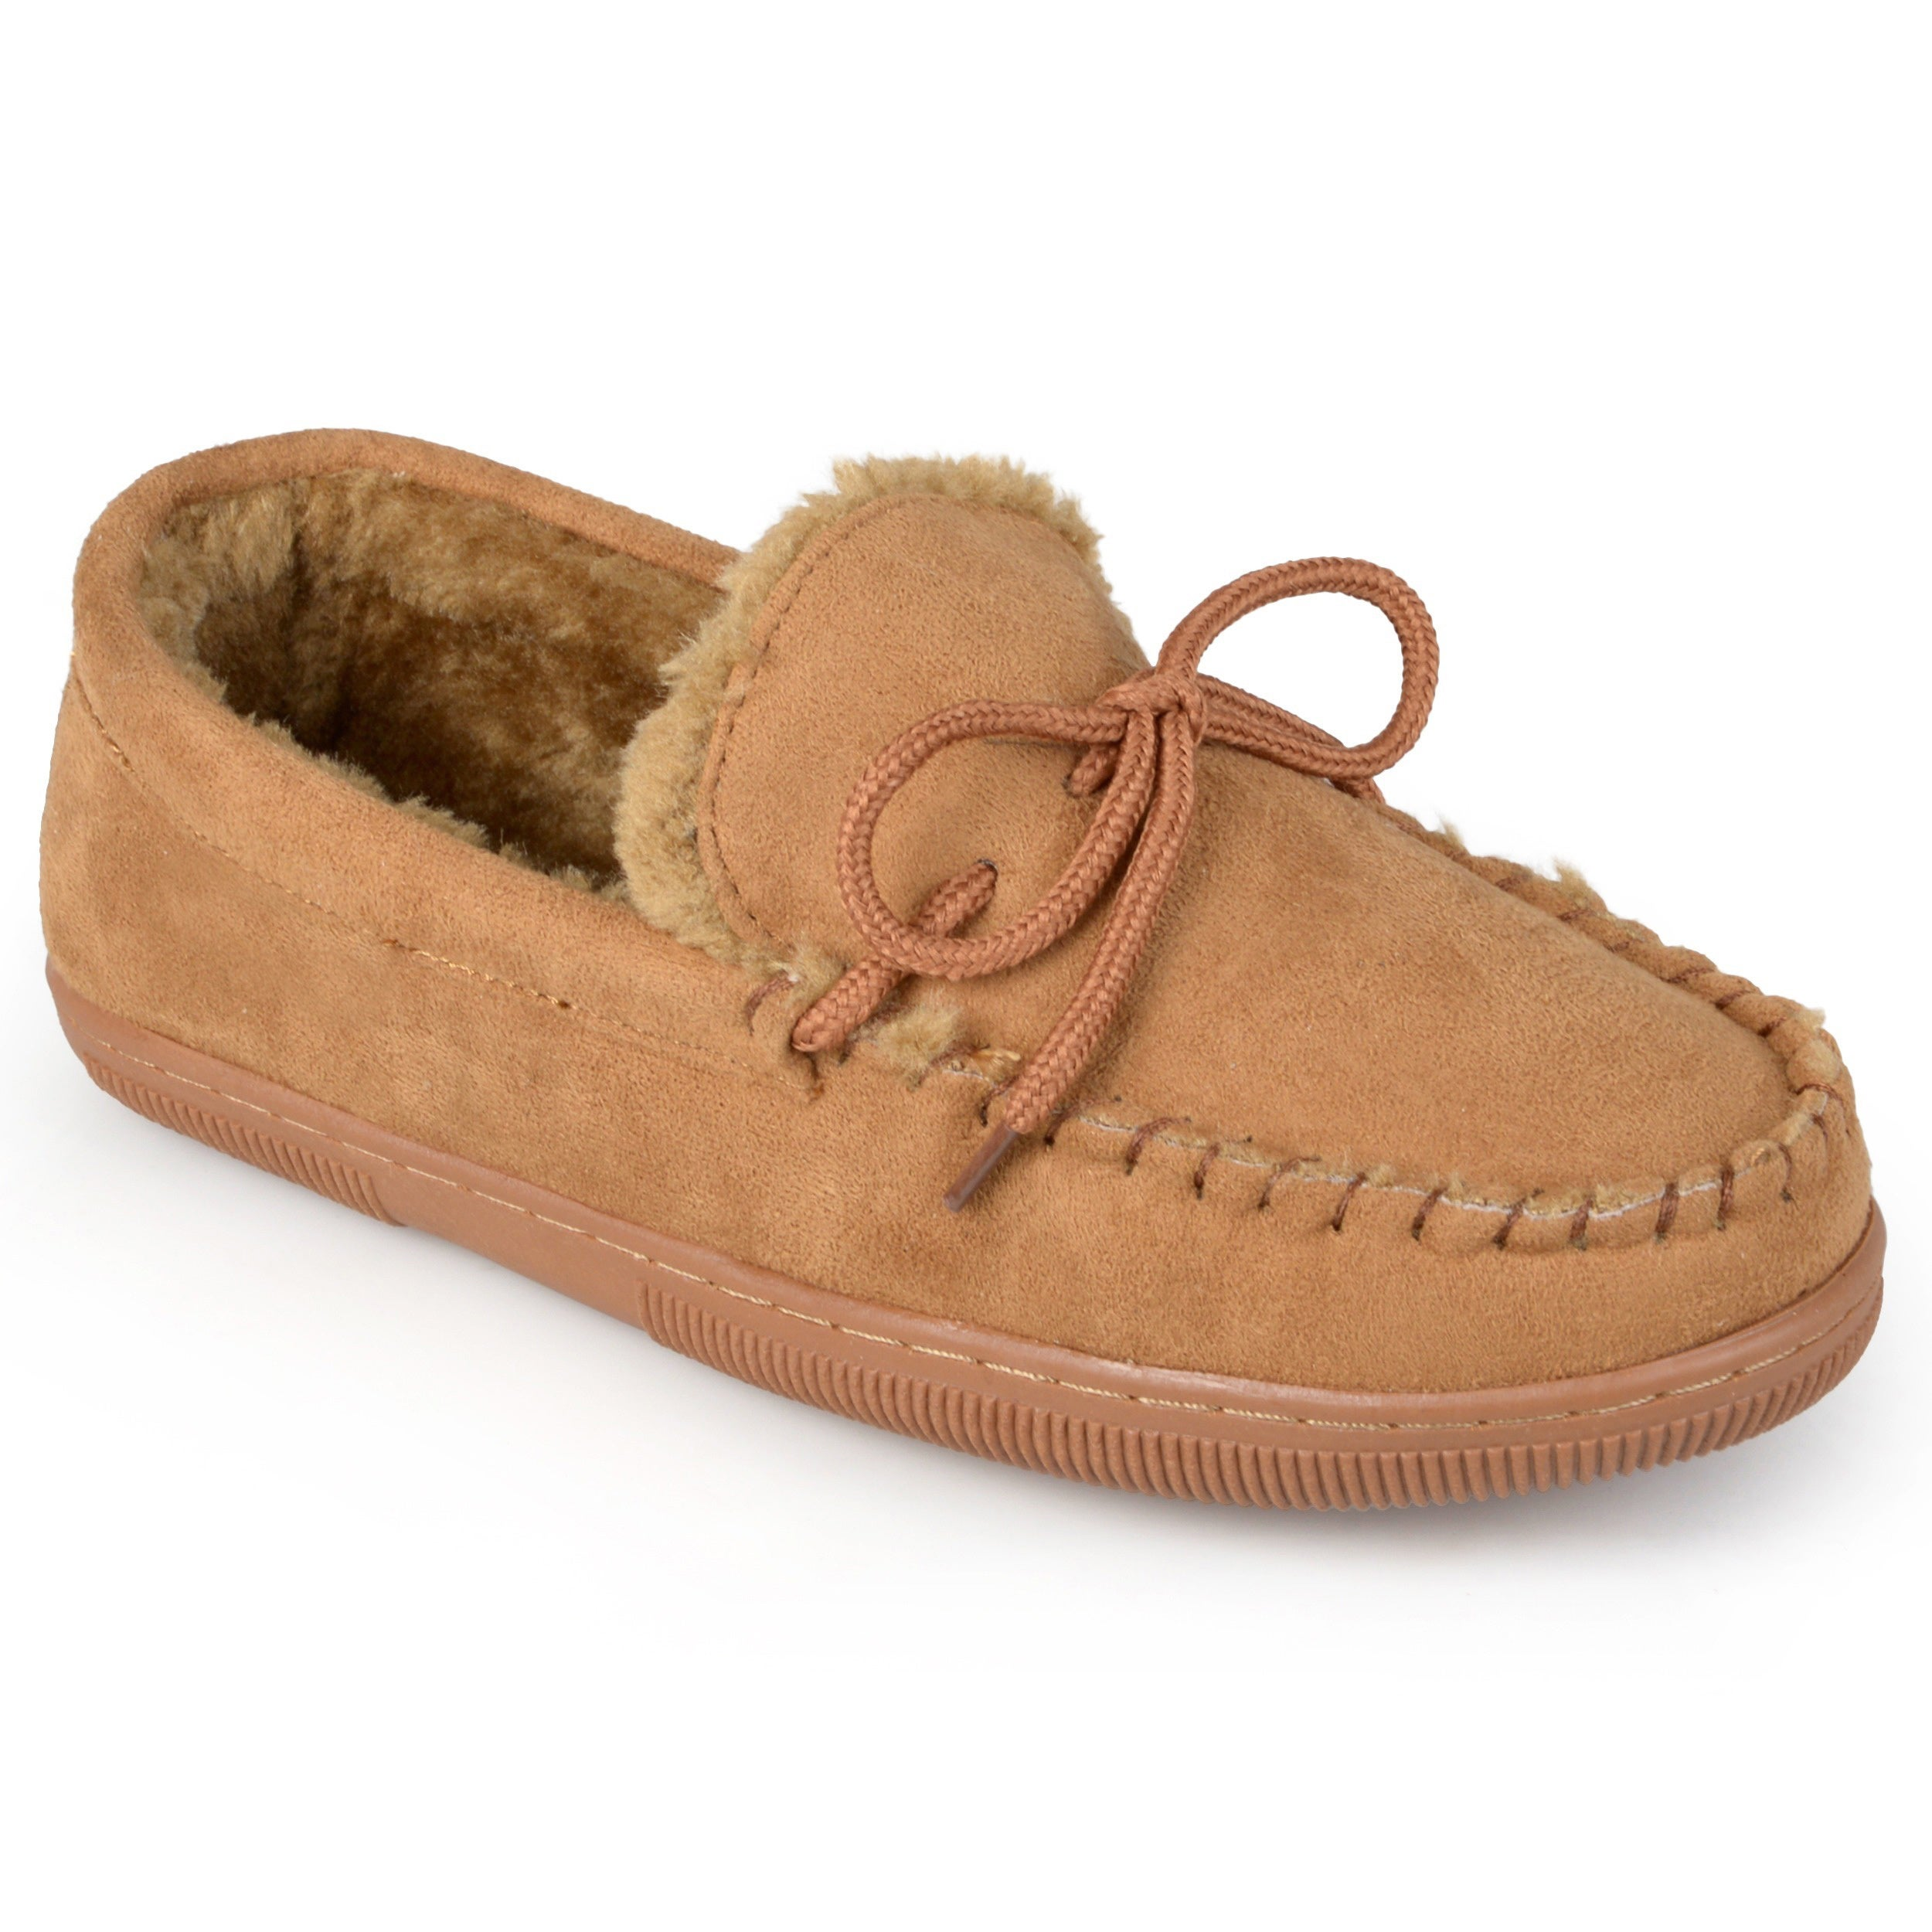 9e5c7faf5 Shop Boston Traveler Men's Suede Moccasin Slippers - Free Shipping ...